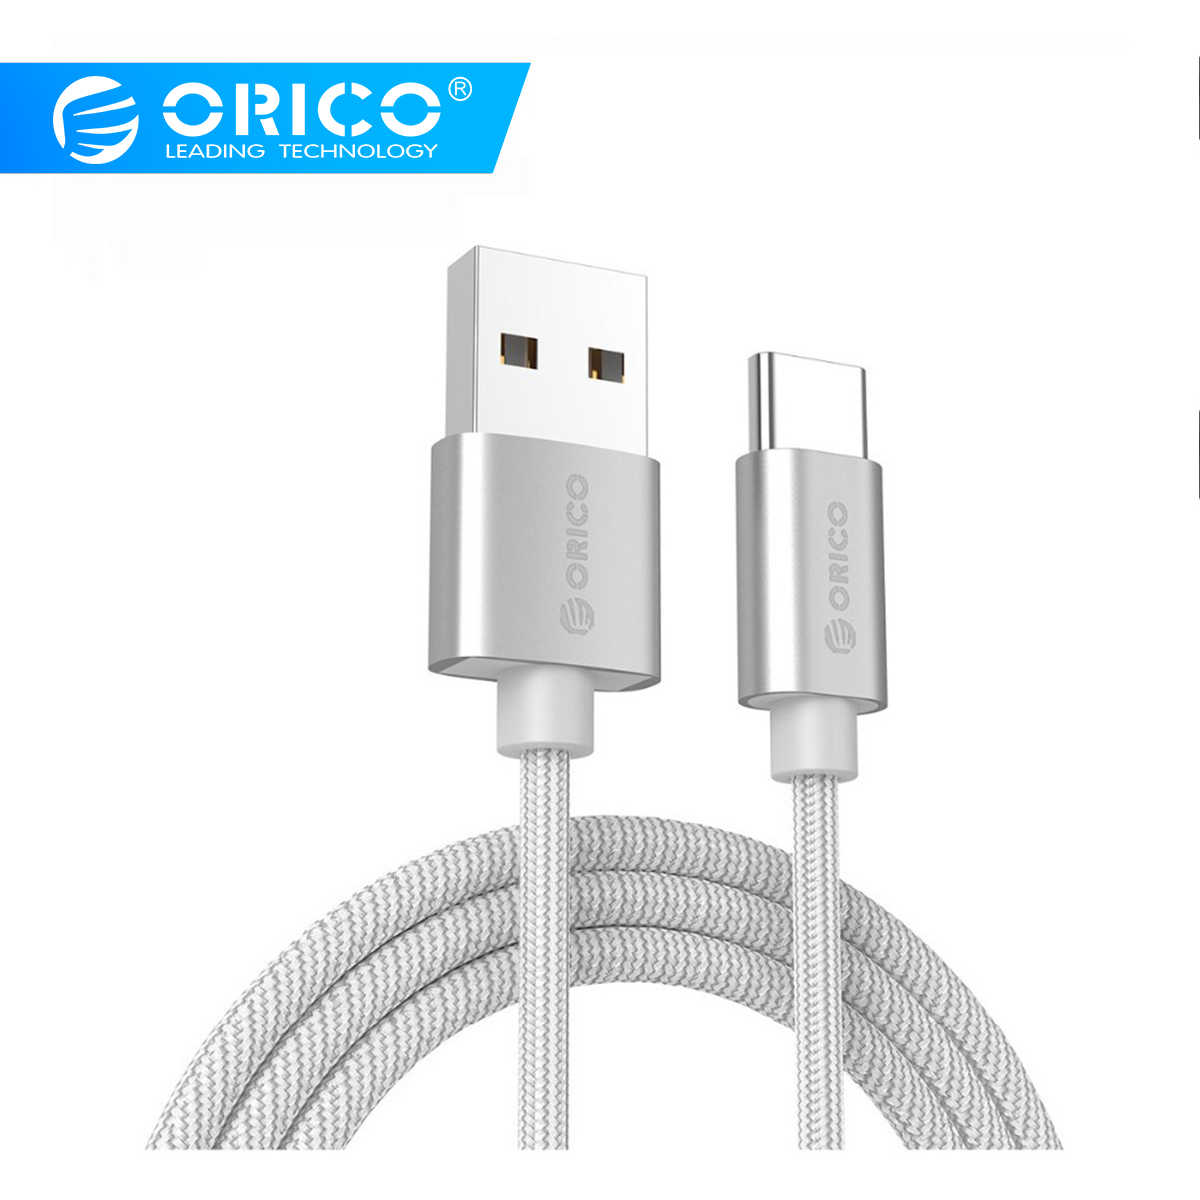 ORICO Nylon USB Type C Cable usb type-c cables for xiaomi mi5 Oneplus LG Nexus 5x huawei samsung letv usb type c wire